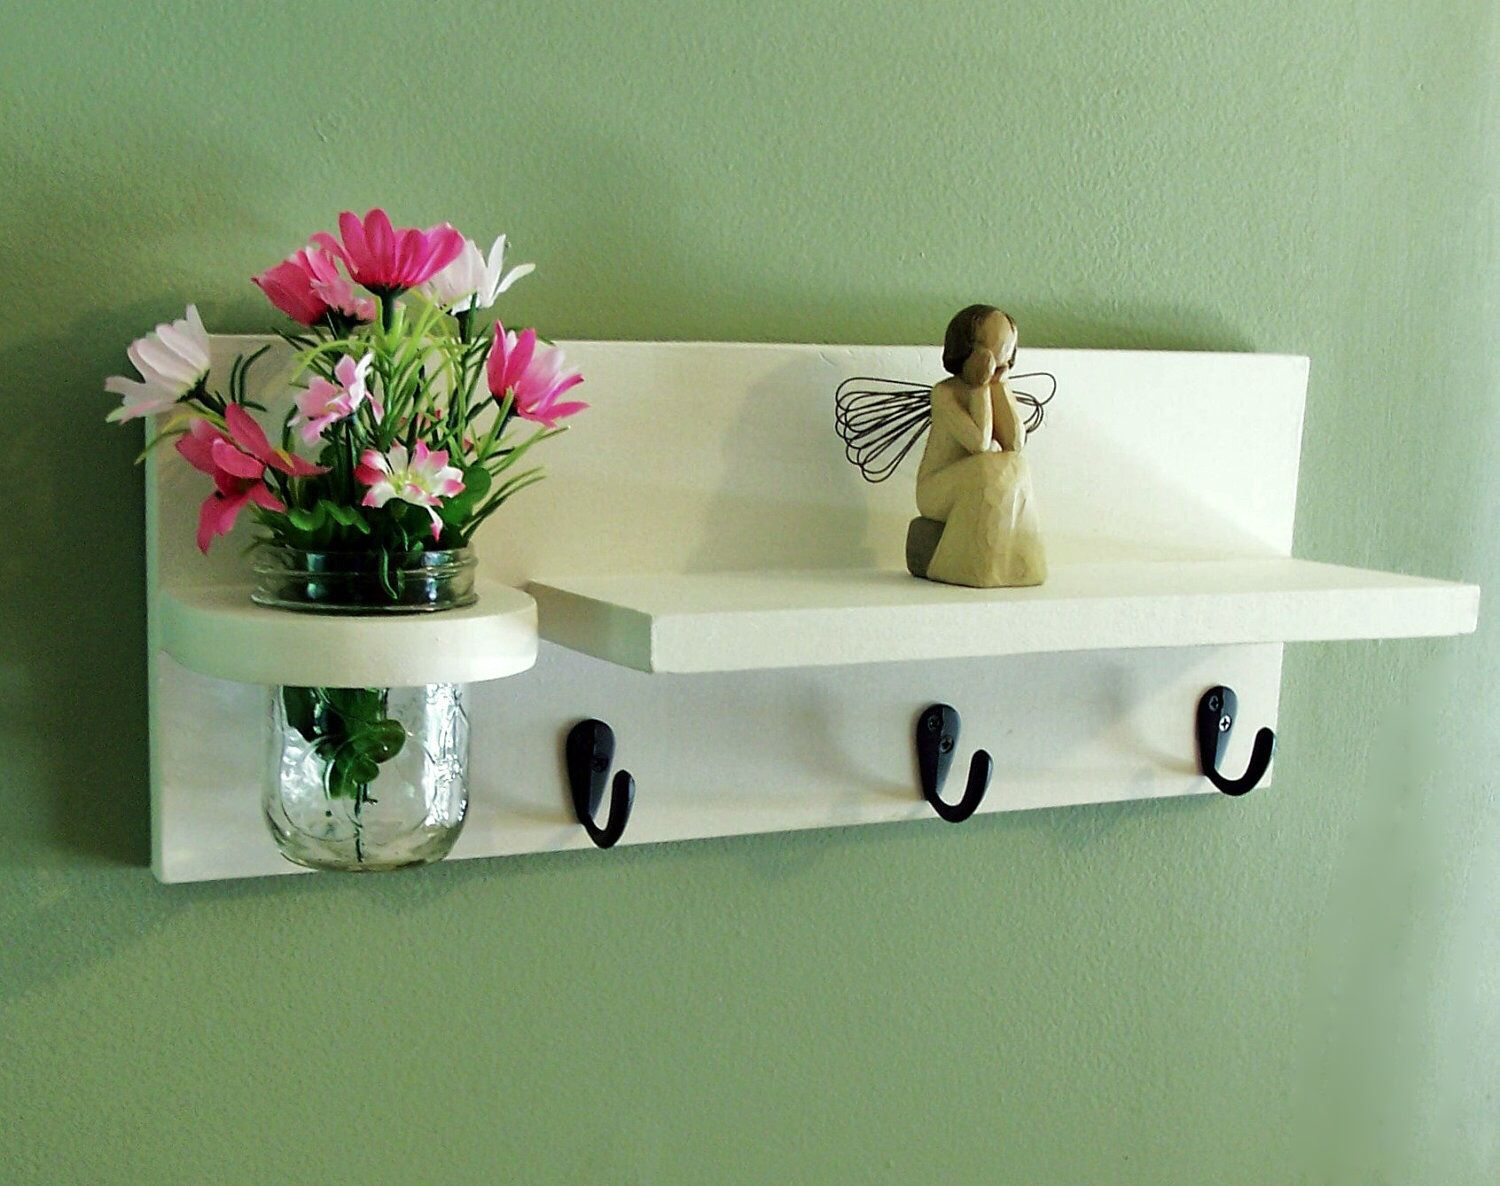 Perchero Key hooks, Decor, Shelves